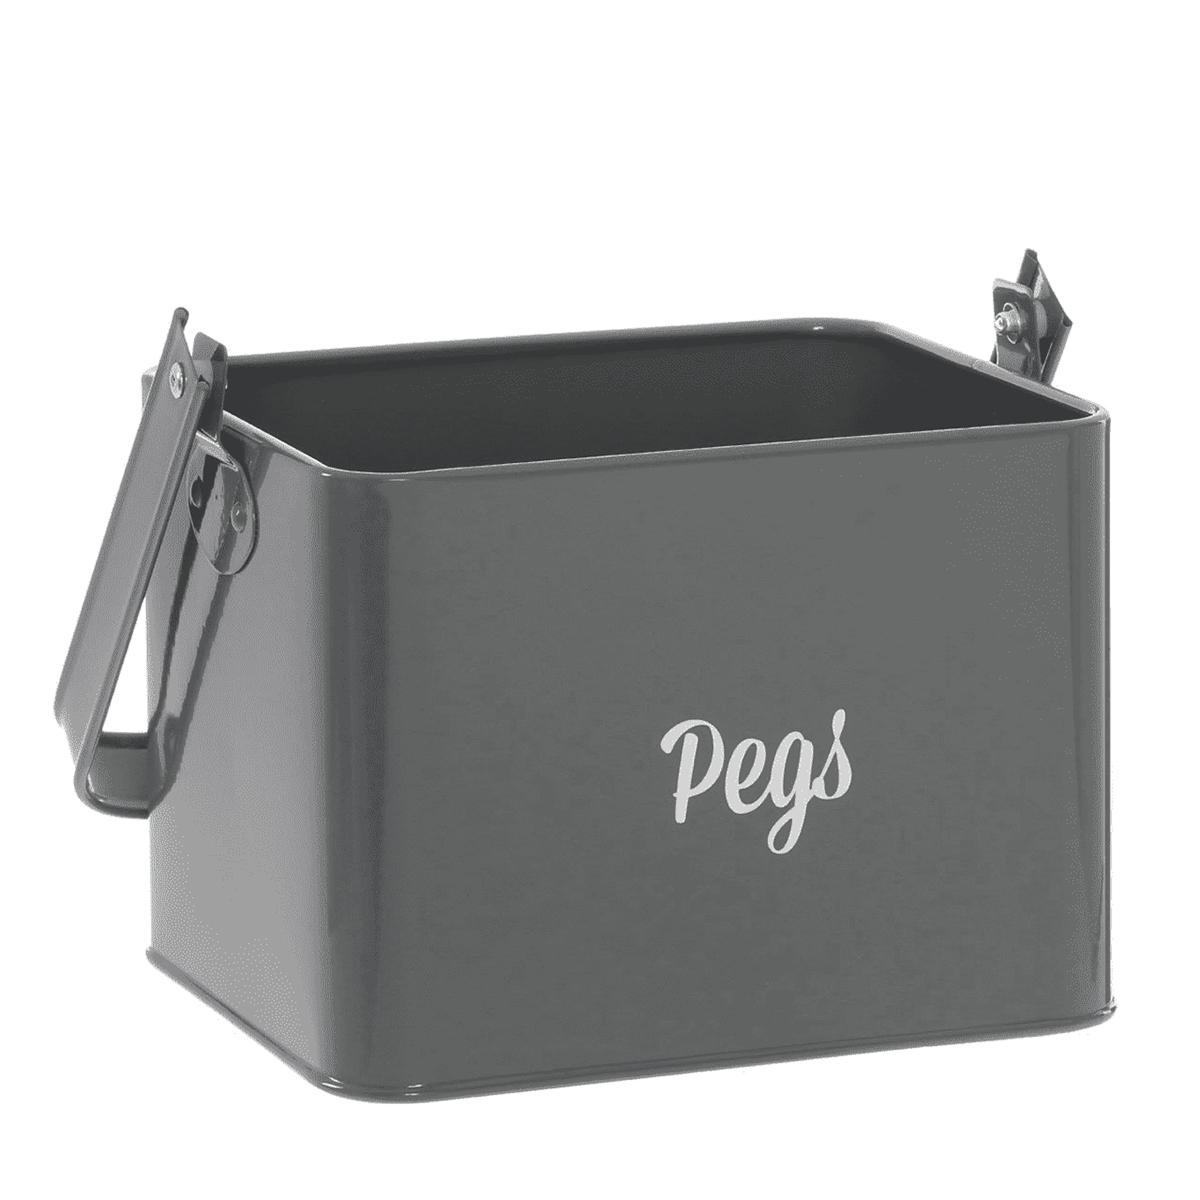 Premier Housewares Marlo Grey Peg Box With Handle